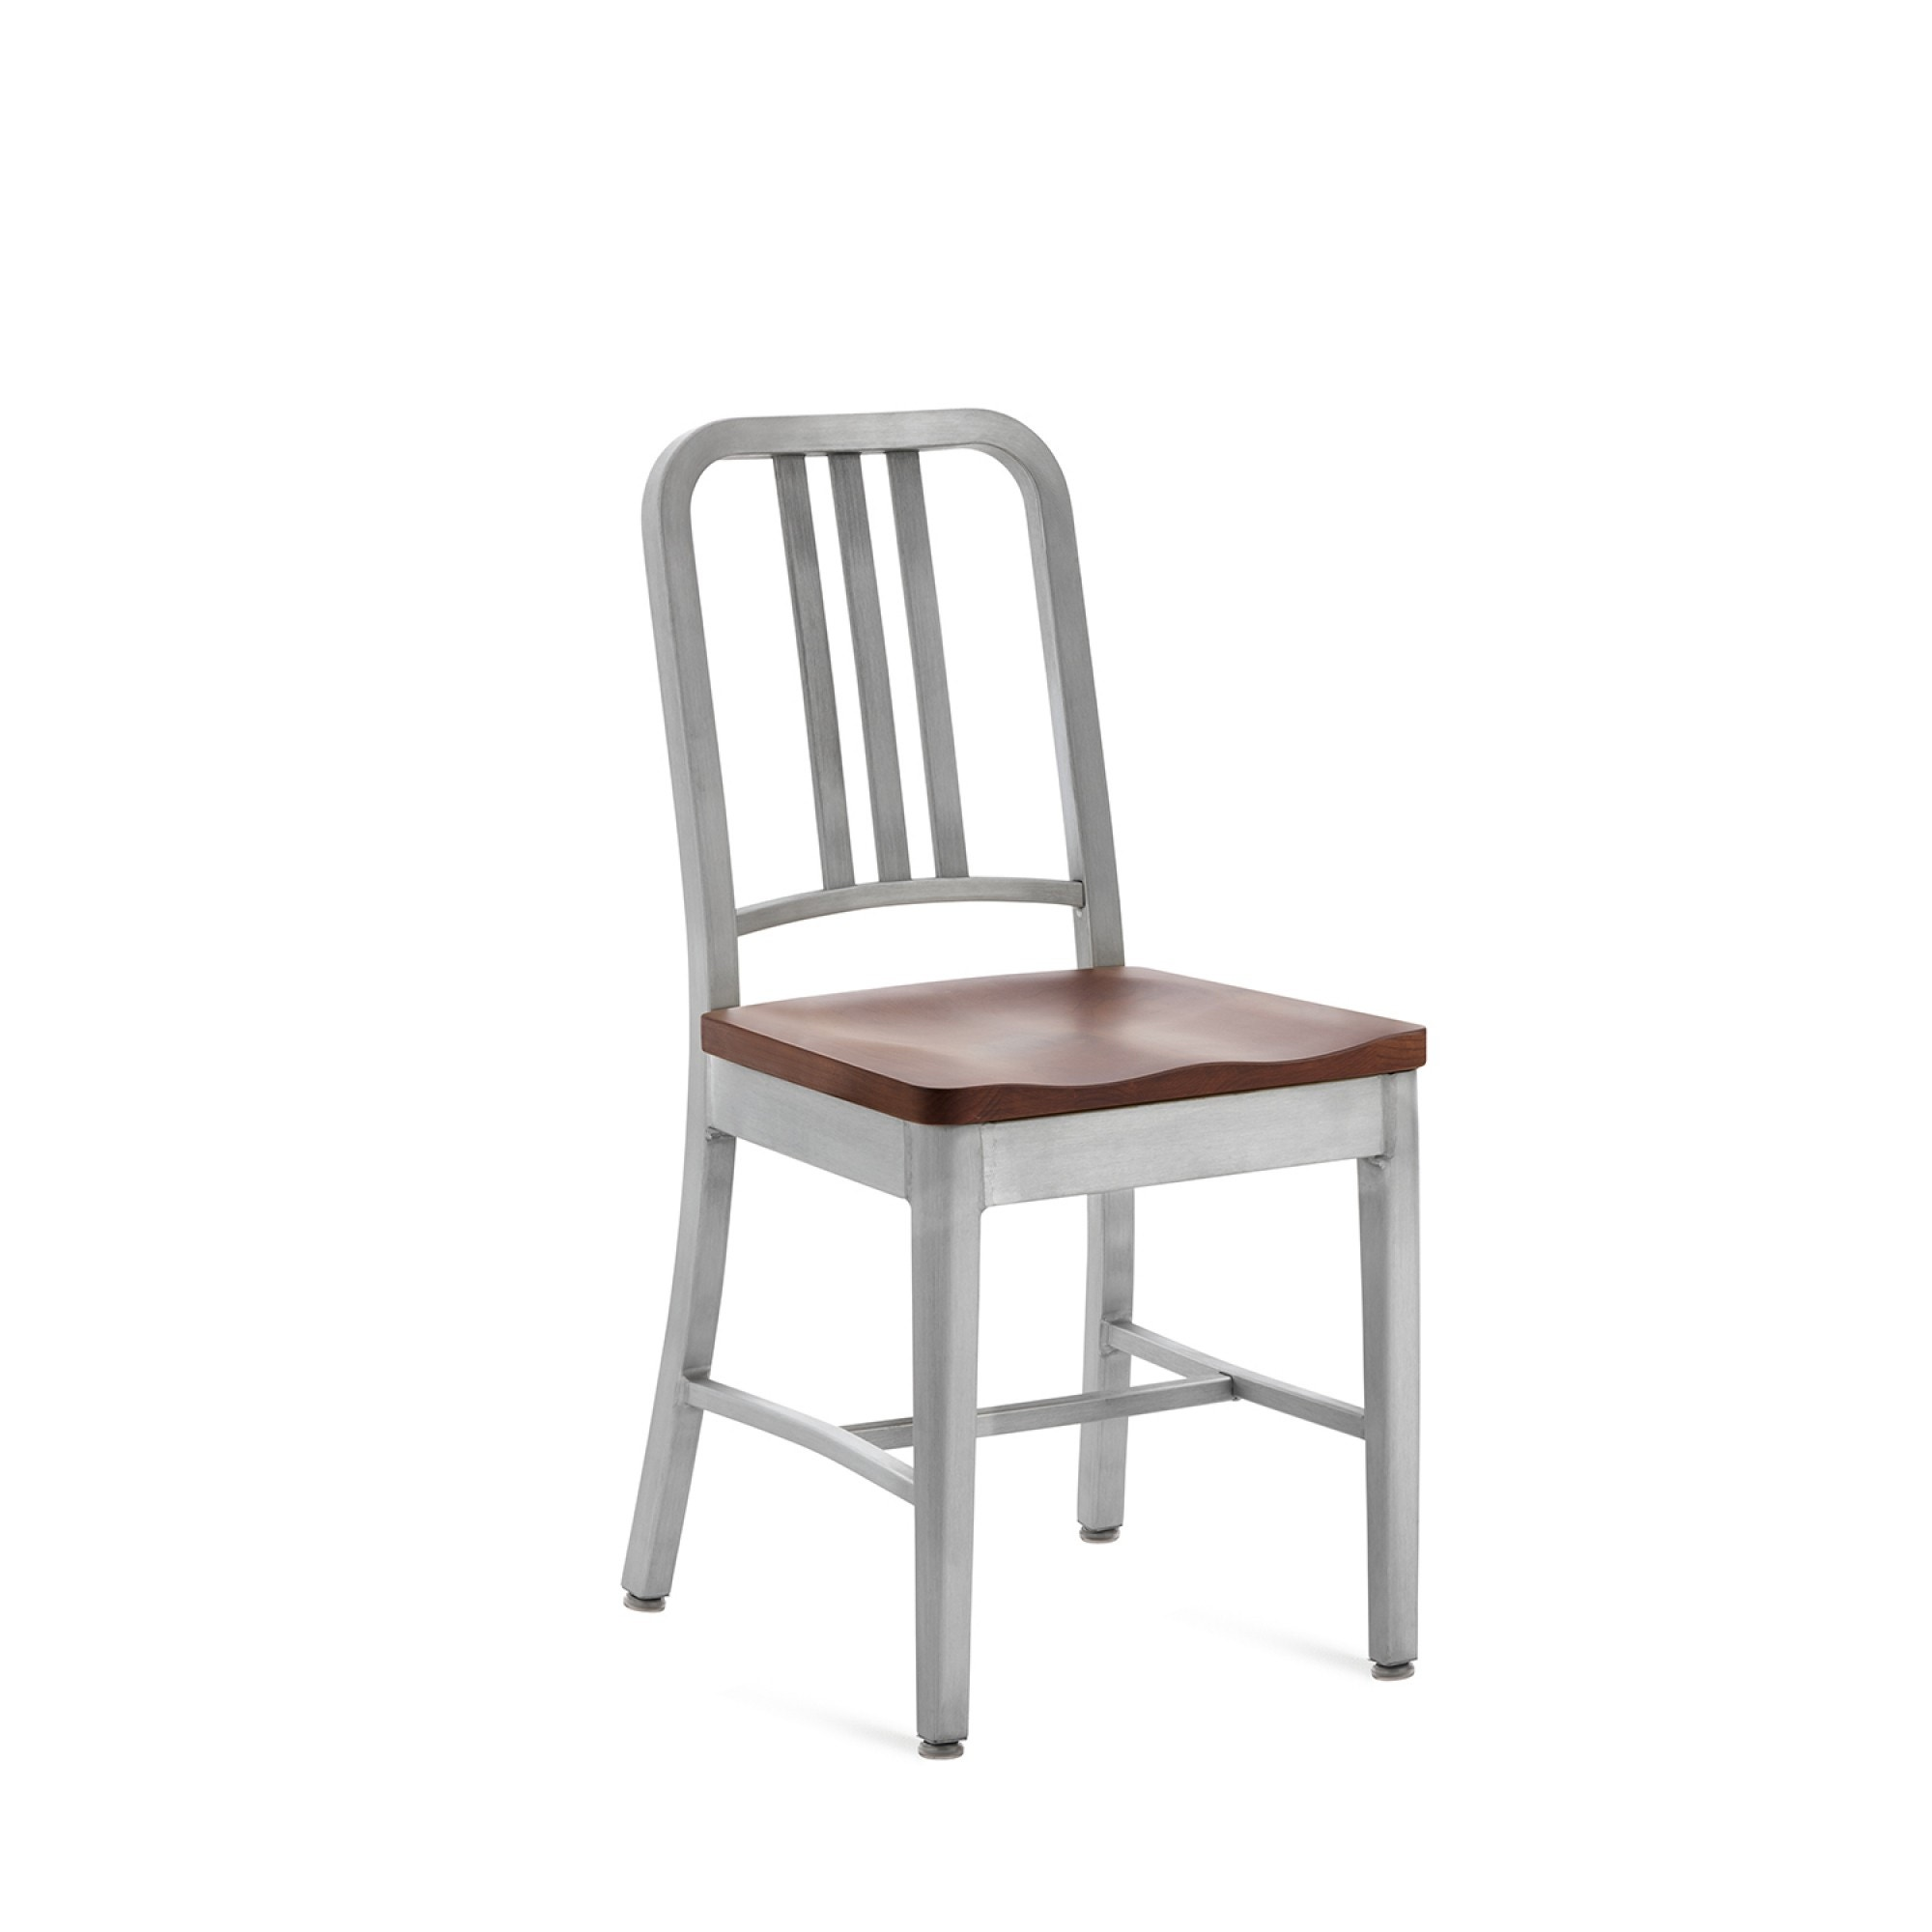 Emeco Navy™ Chair With Natural Wood Seat